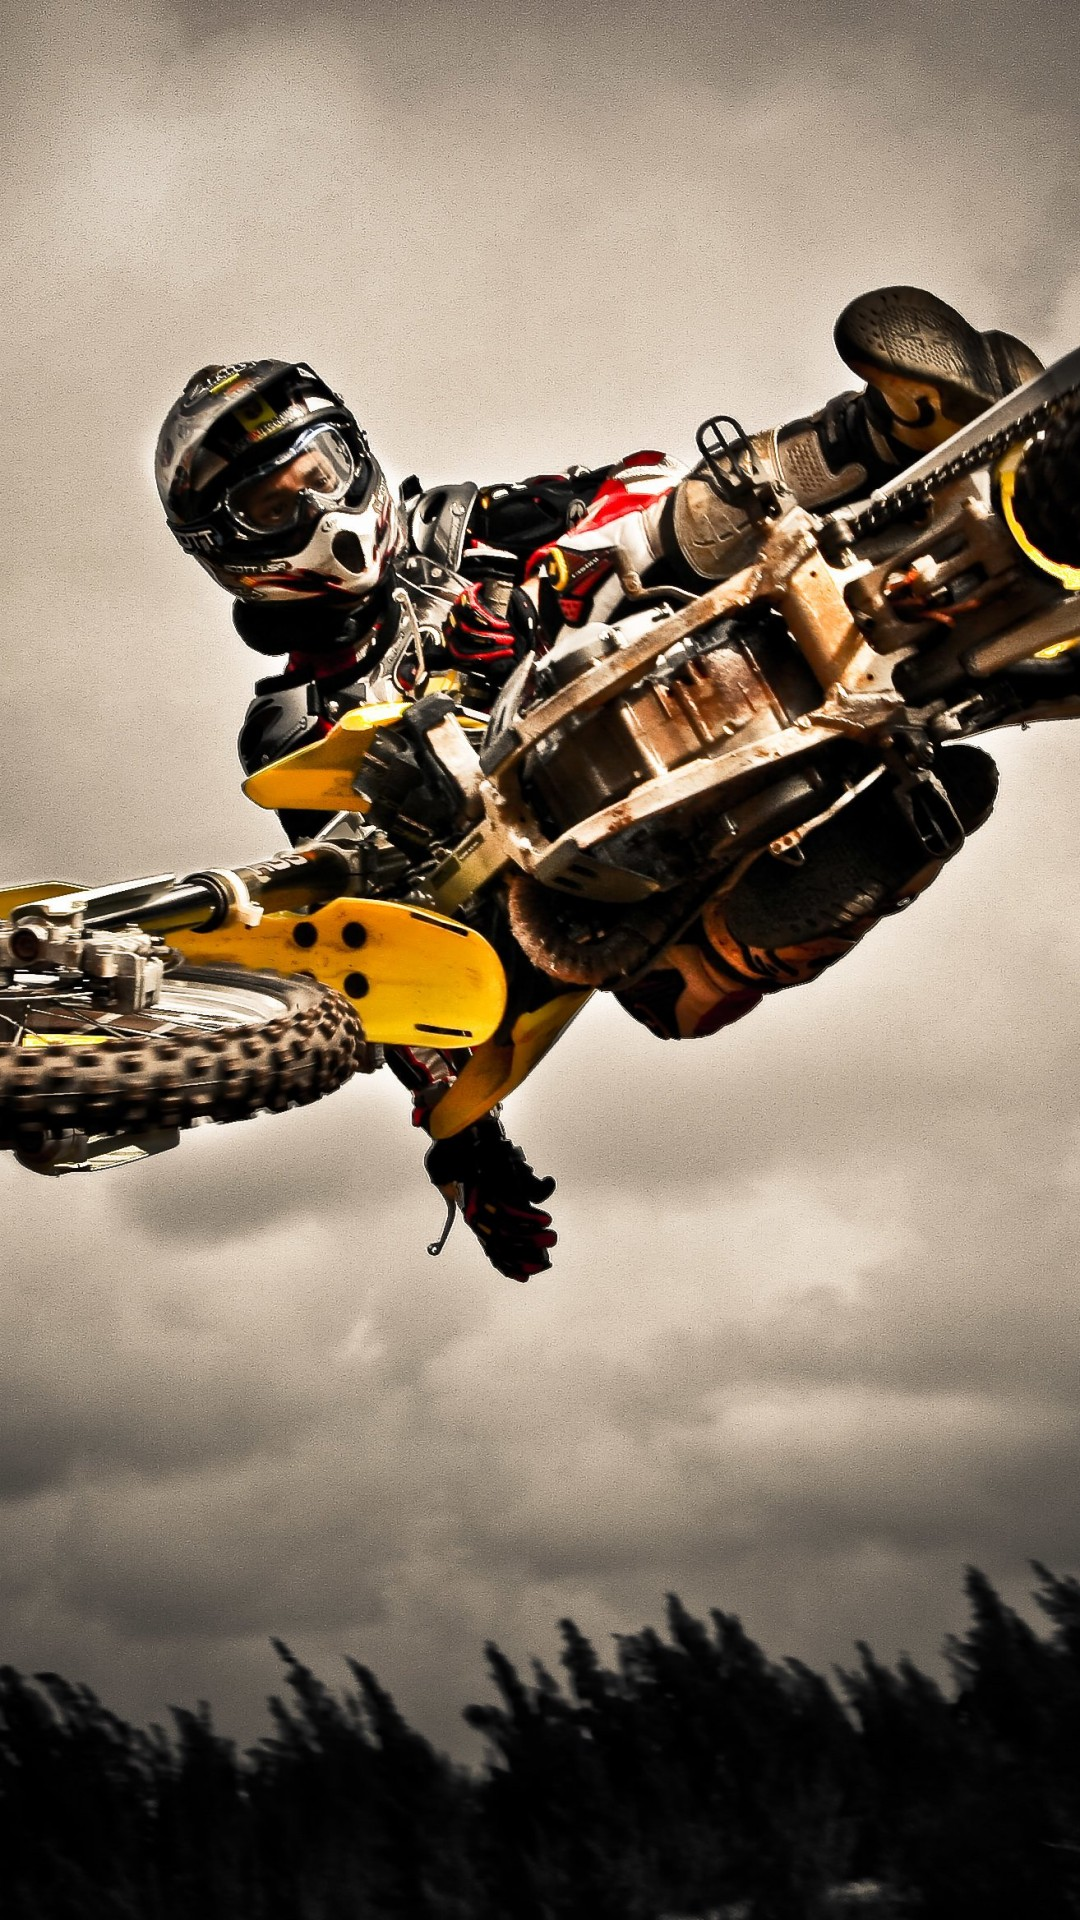 Motocross Jump Wallpaper for SONY Xperia Z3